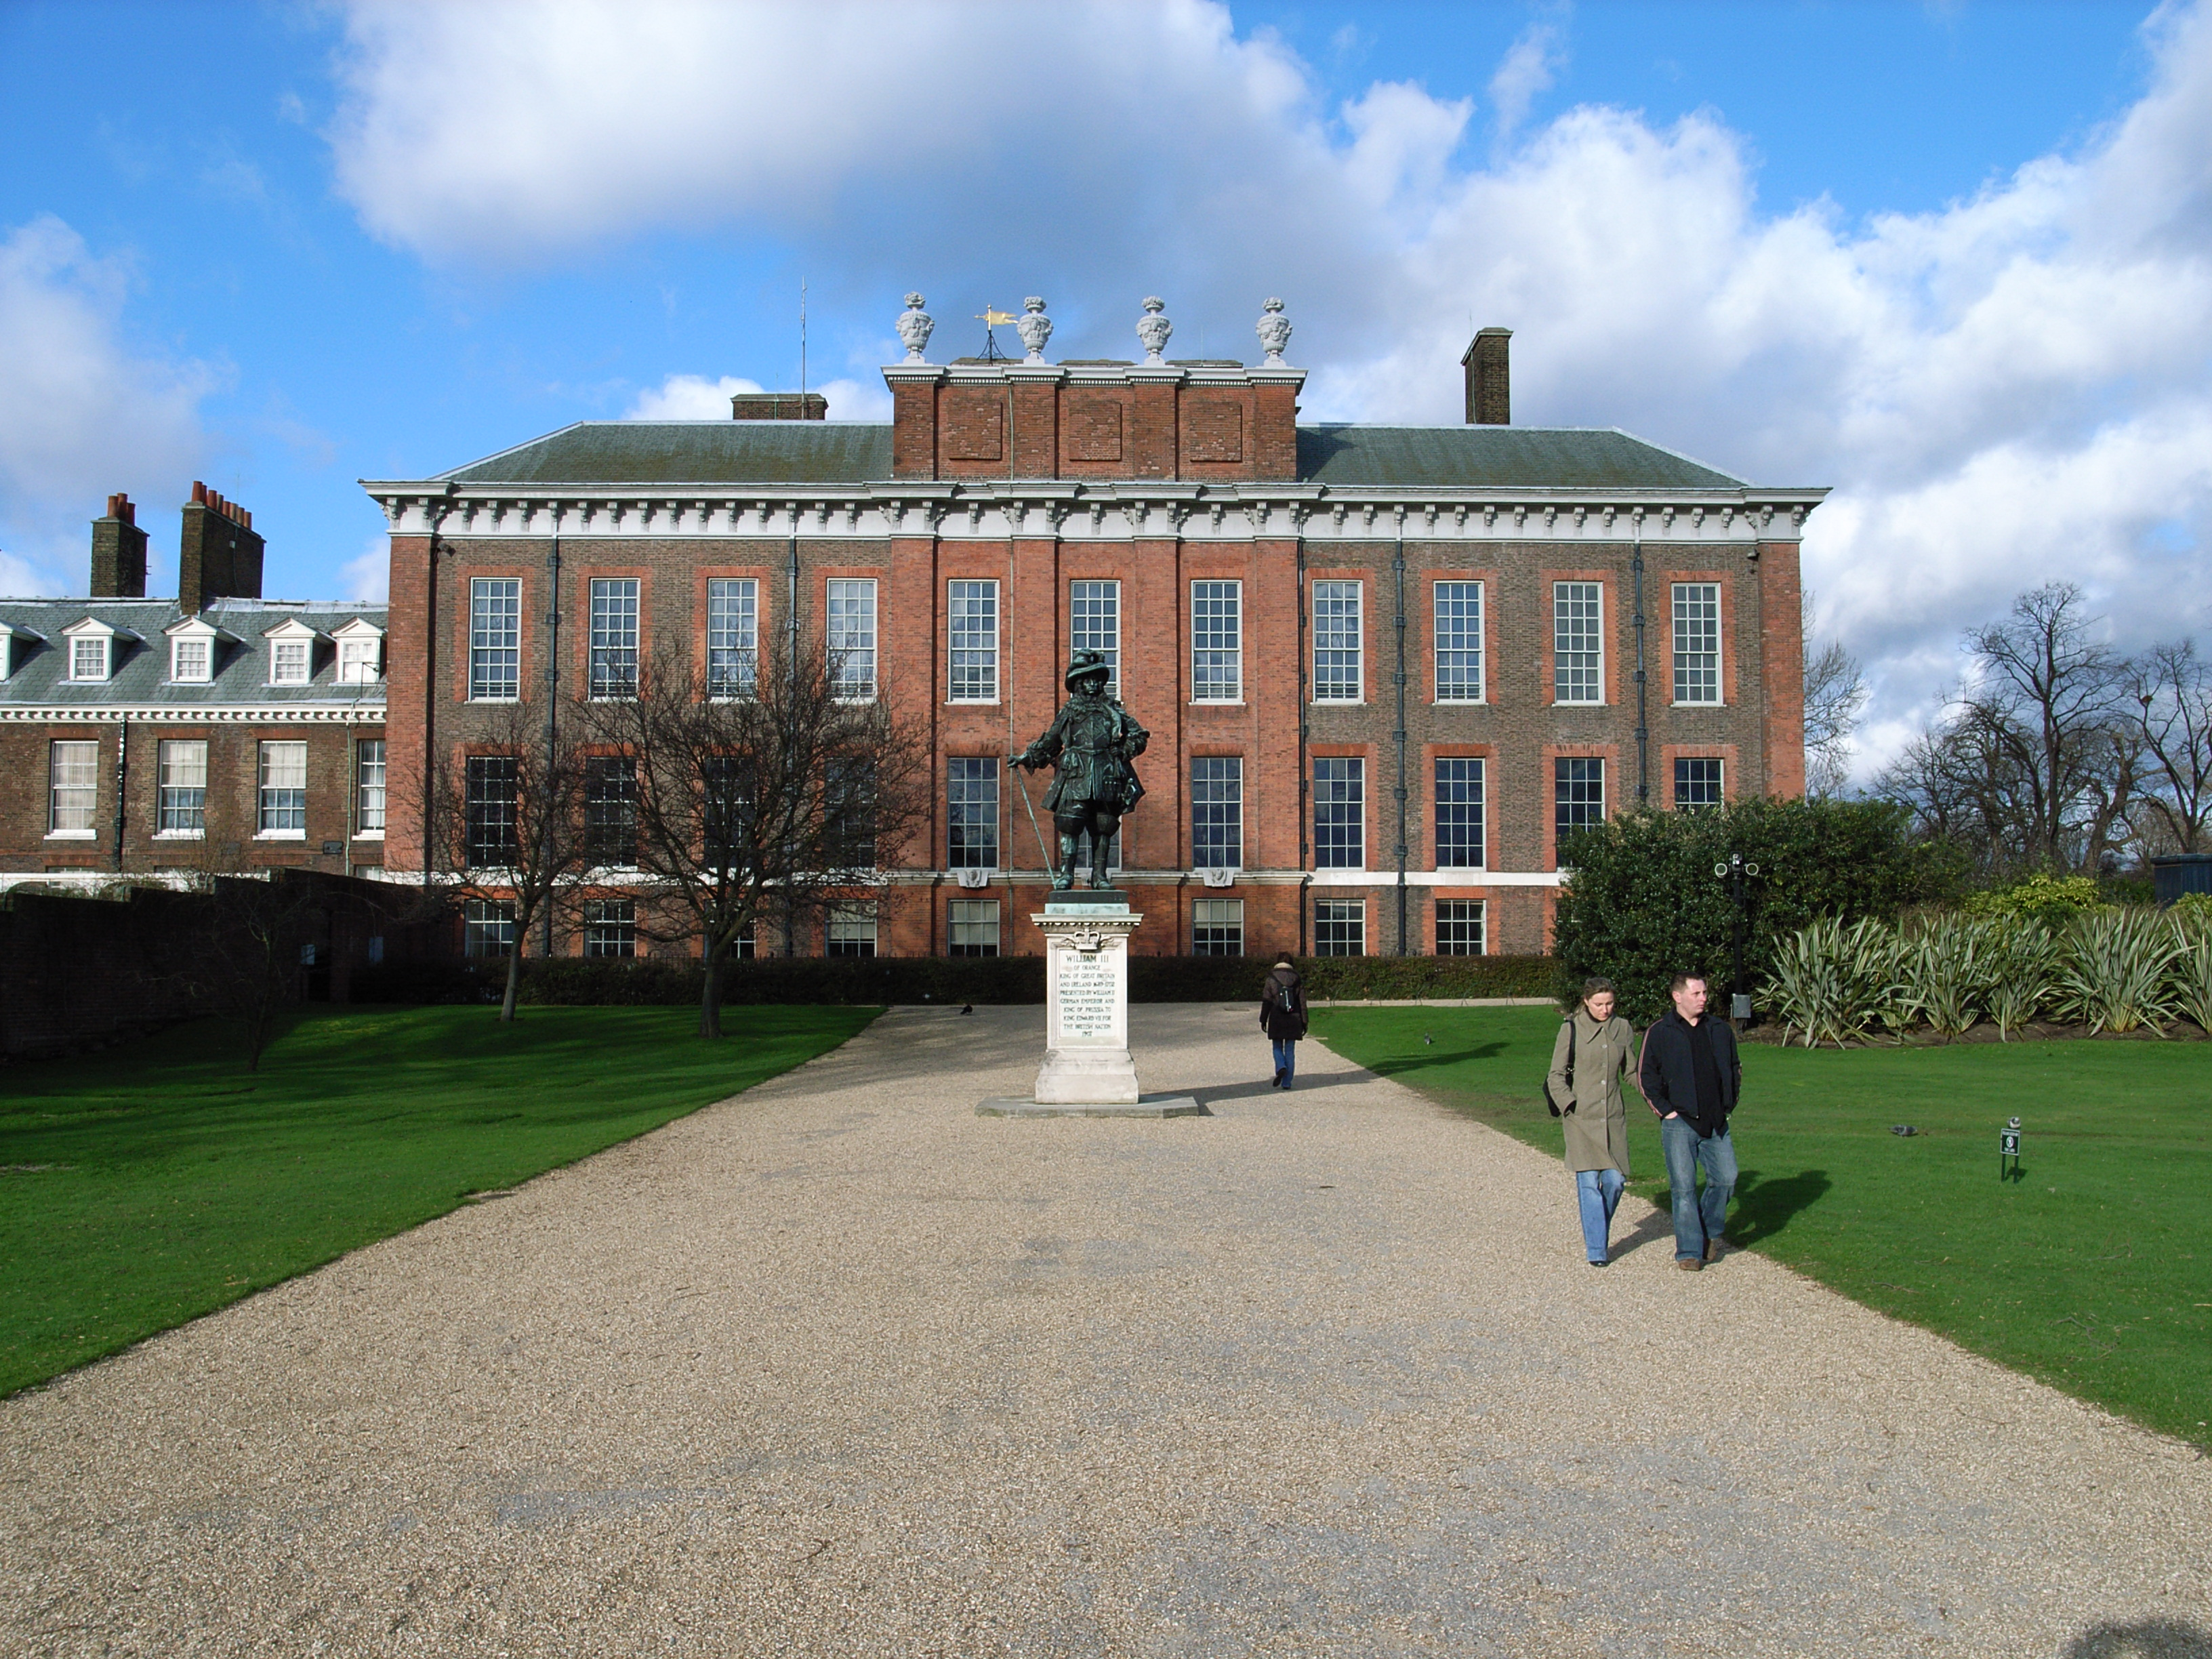 10 Interesting Facts And Figures About Kensington Palace